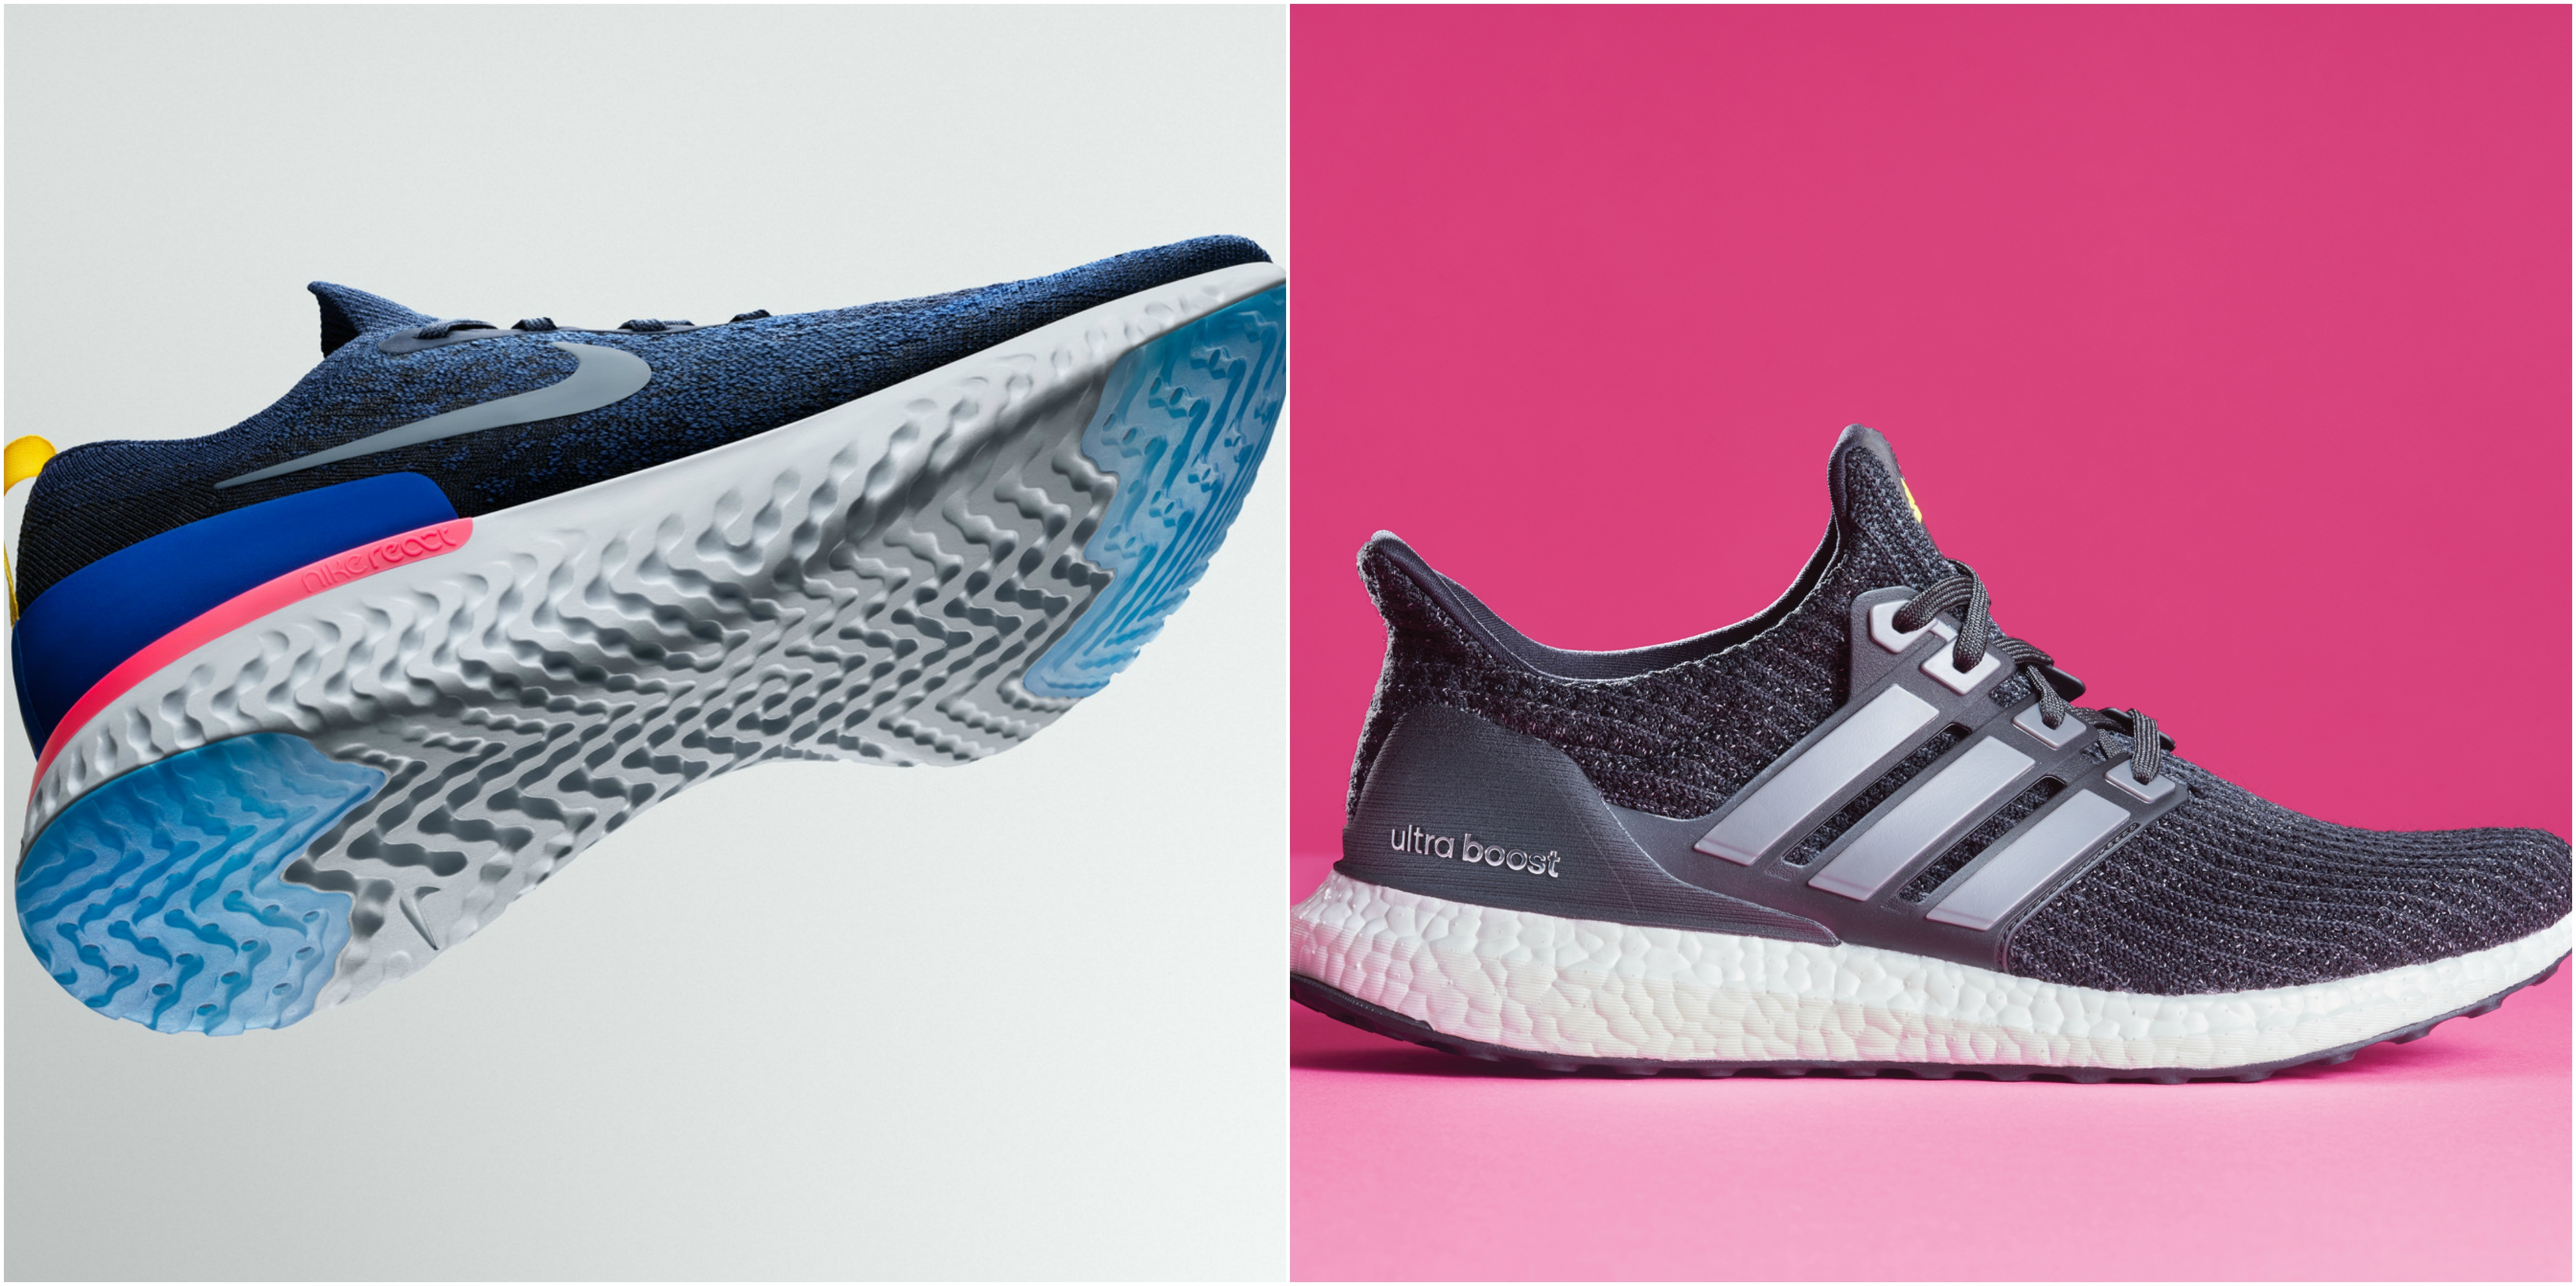 565eb48ccda5 Nike Epic React v. Adidas Ultraboost  which is better